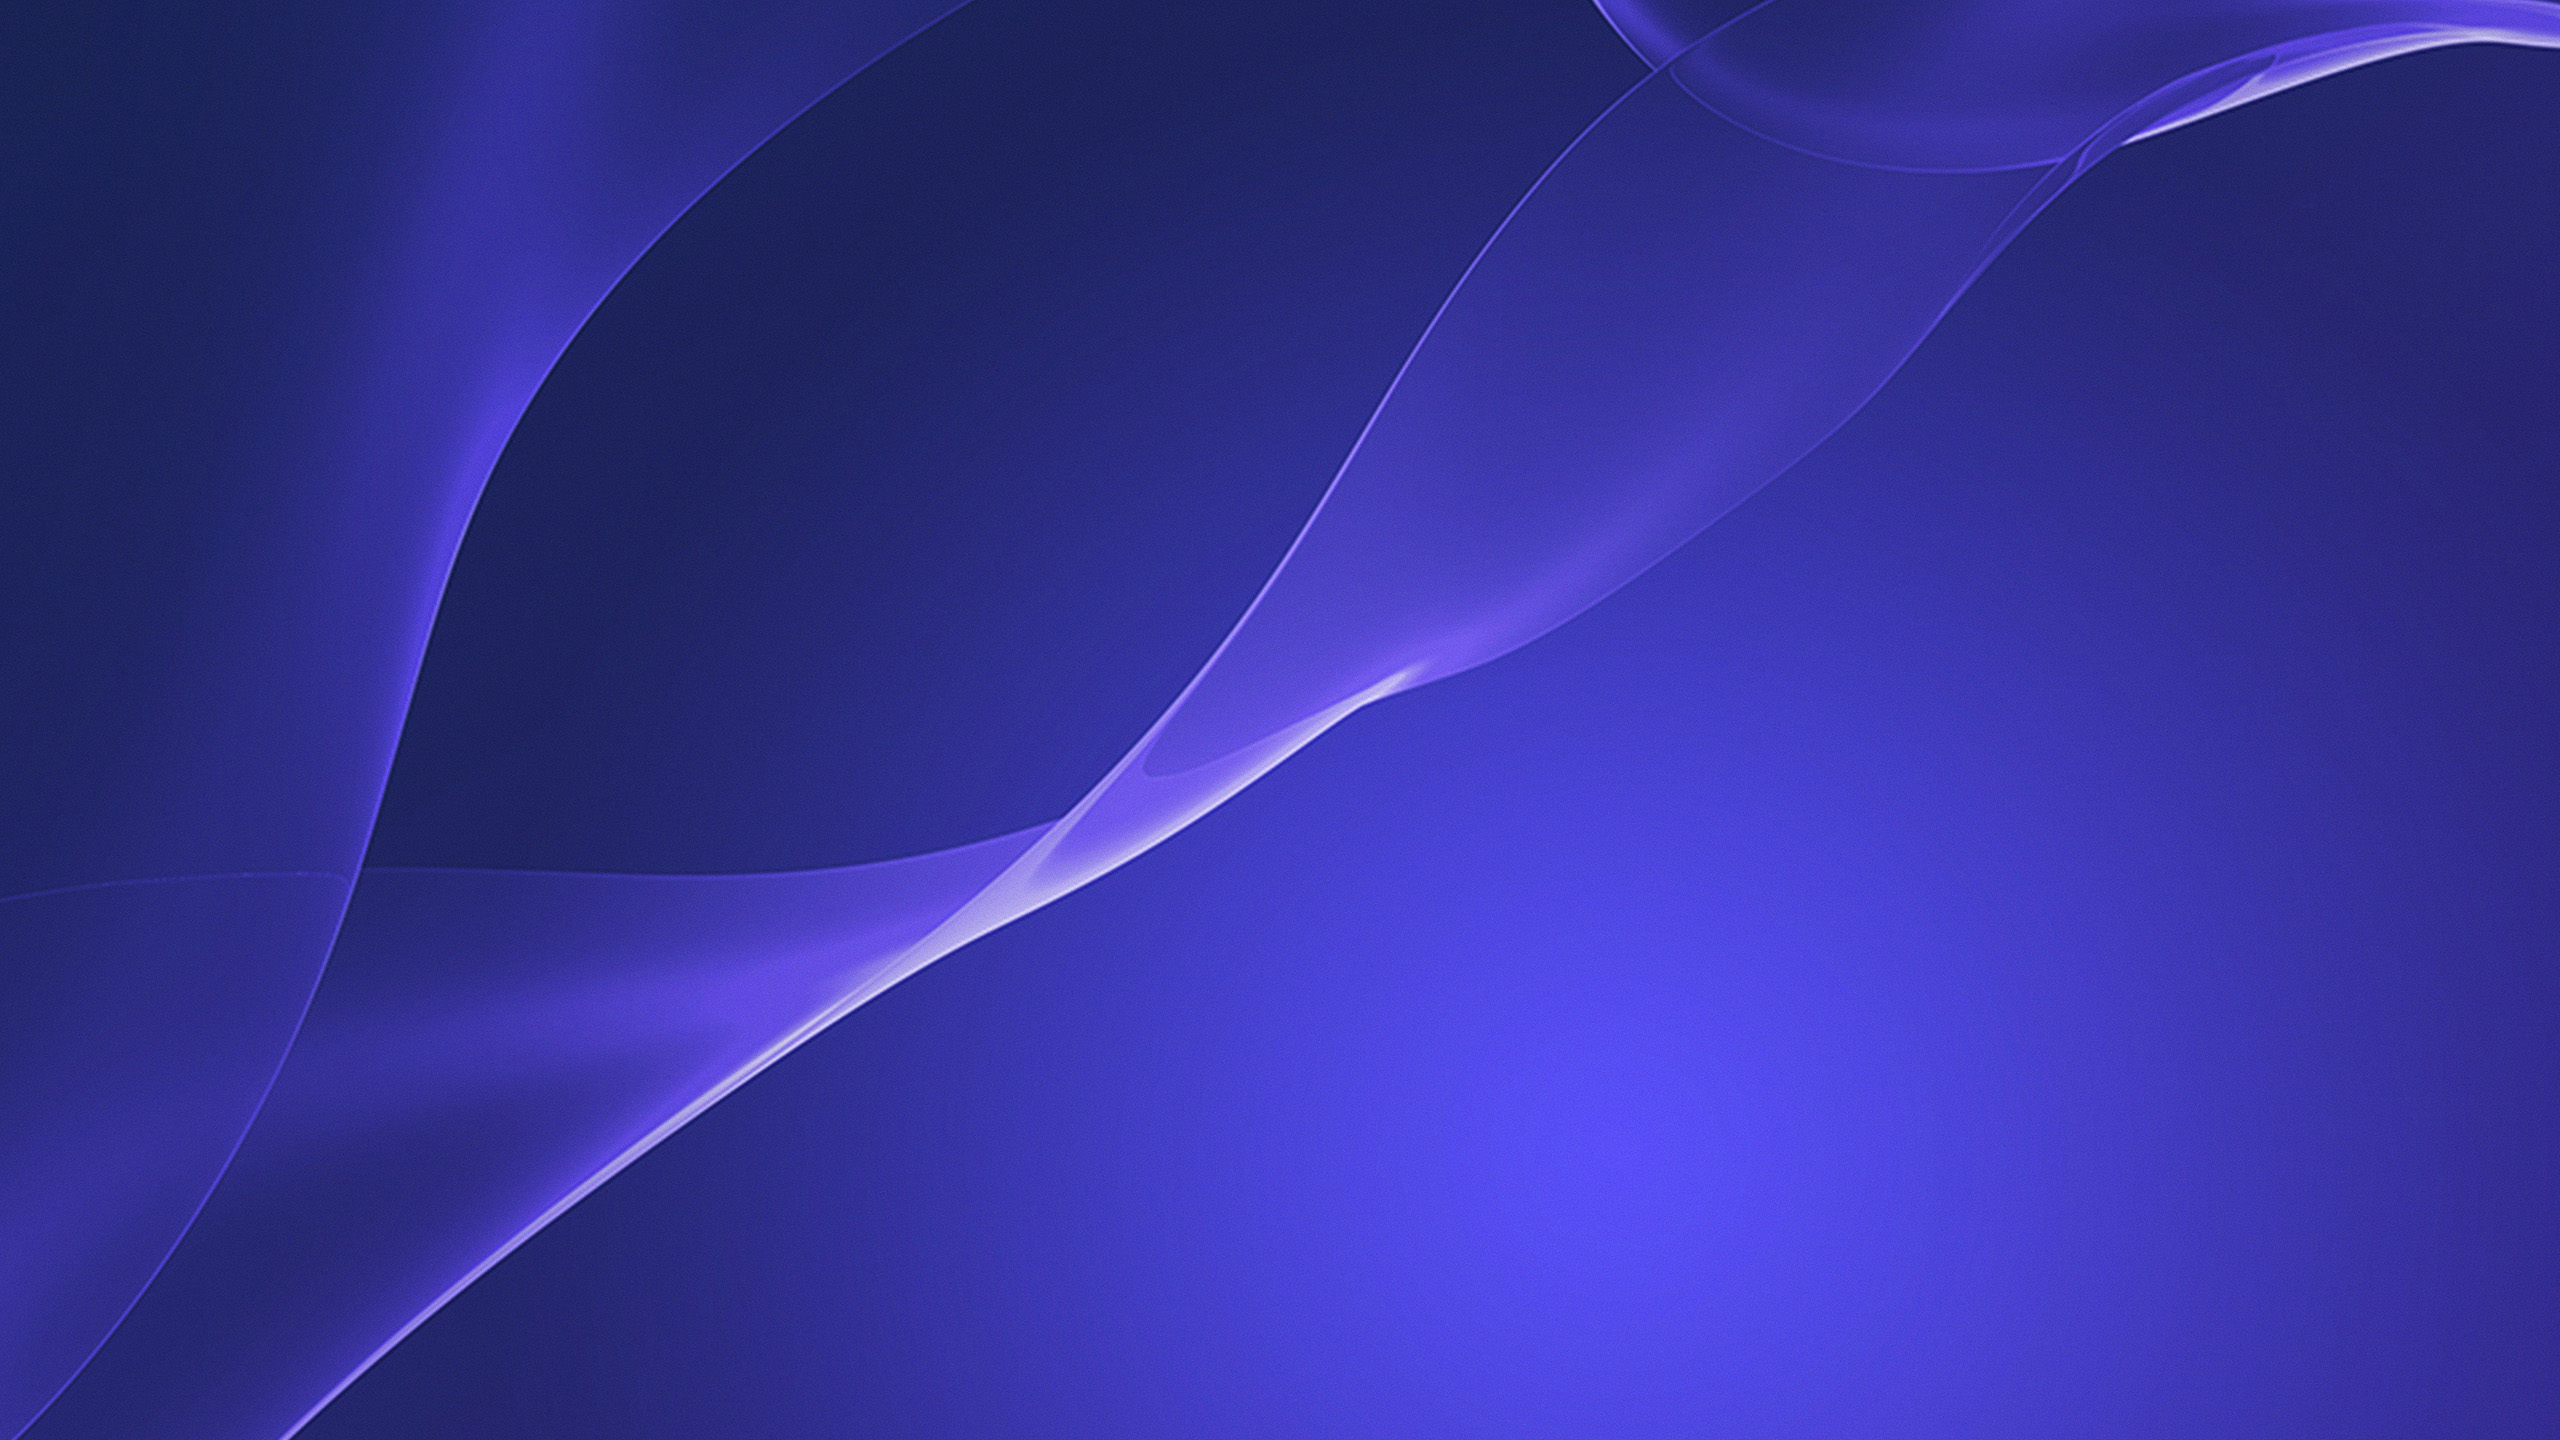 Xiaomi Redmi Note 5 Pro Wallpaper With Abstract Blue Light: Vm16-abstract-blue-rhytm-pattern